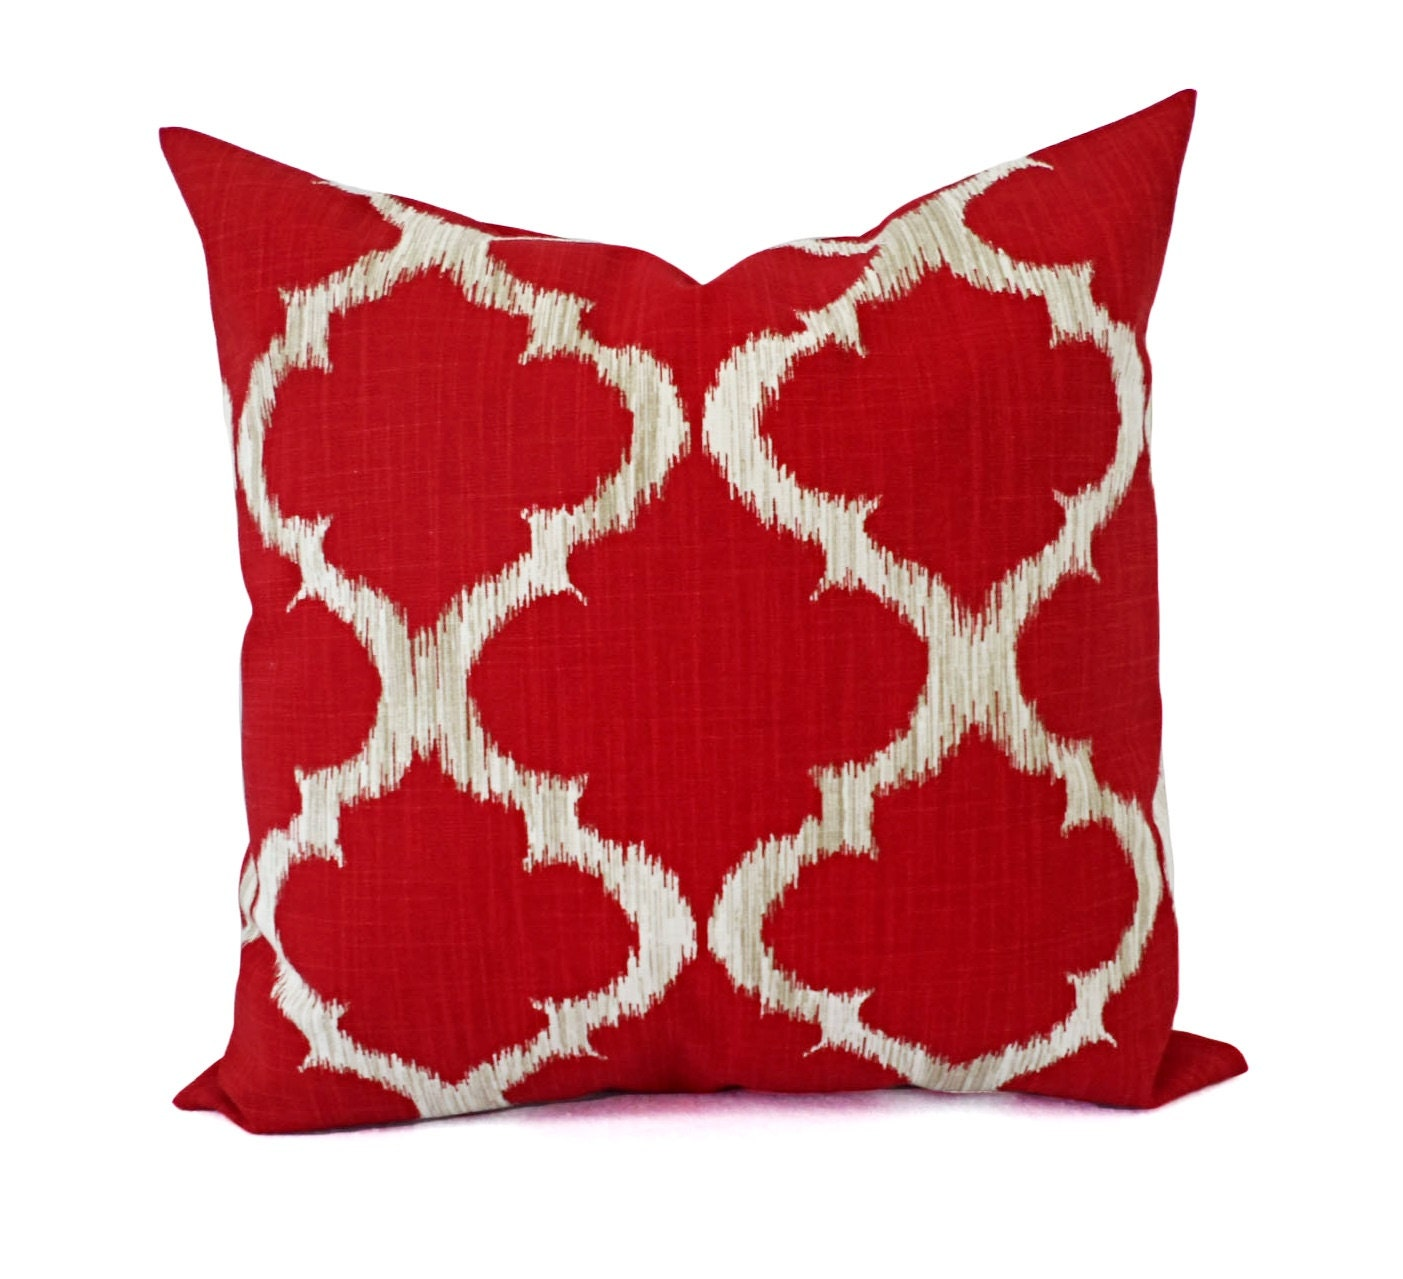 Throw Pillows Girly : Deep Red Pillow Covers Red and Grey Throw Pillows Pillow